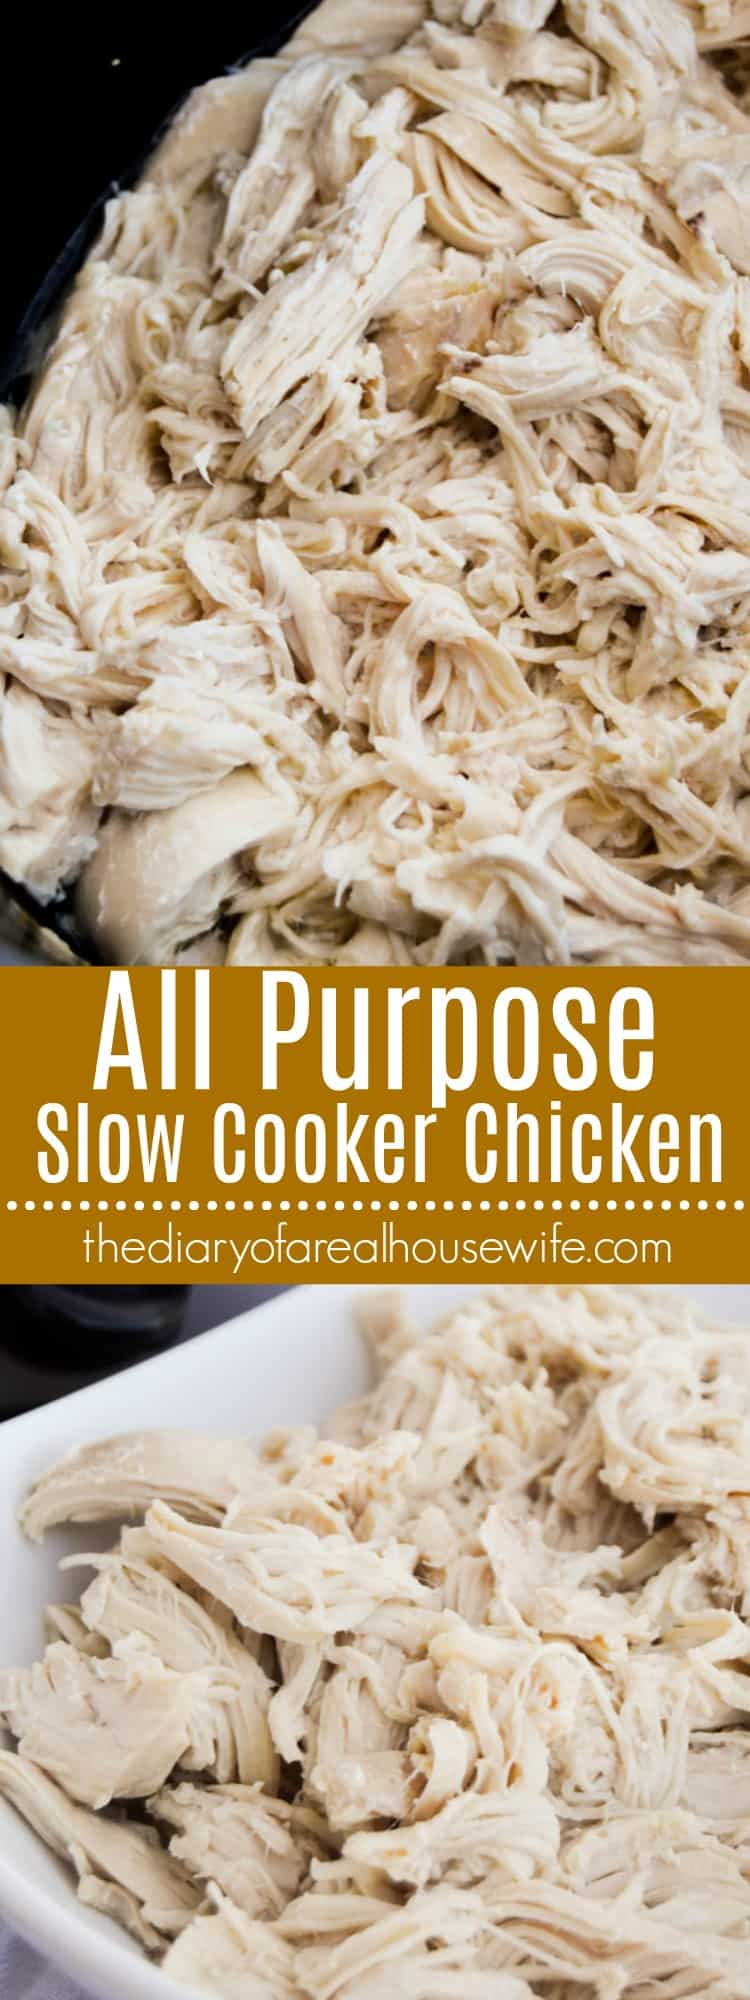 All Purpose Slow Cooker Chicken